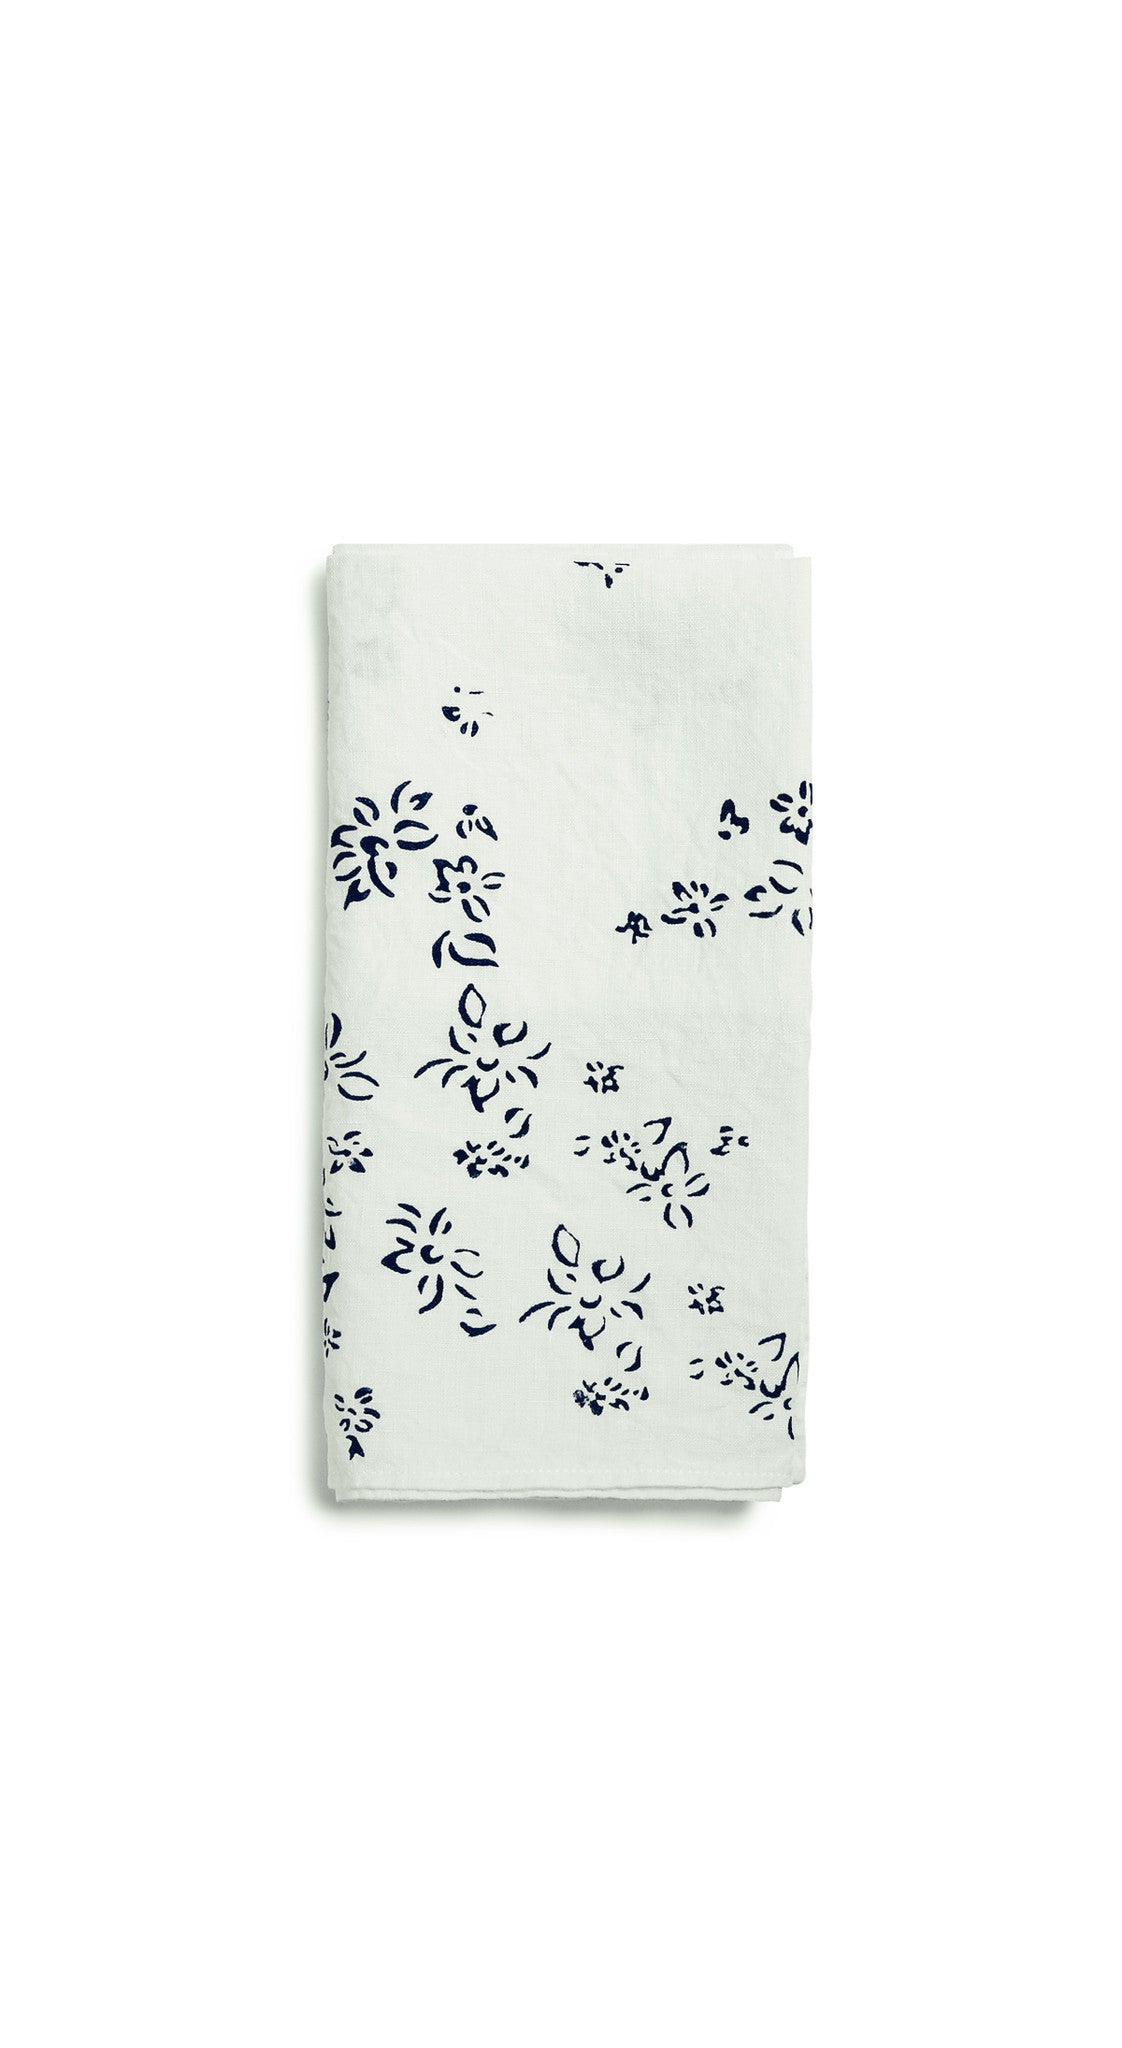 Bernadette's Falling Flower Linen Napkin in Midnight Blue